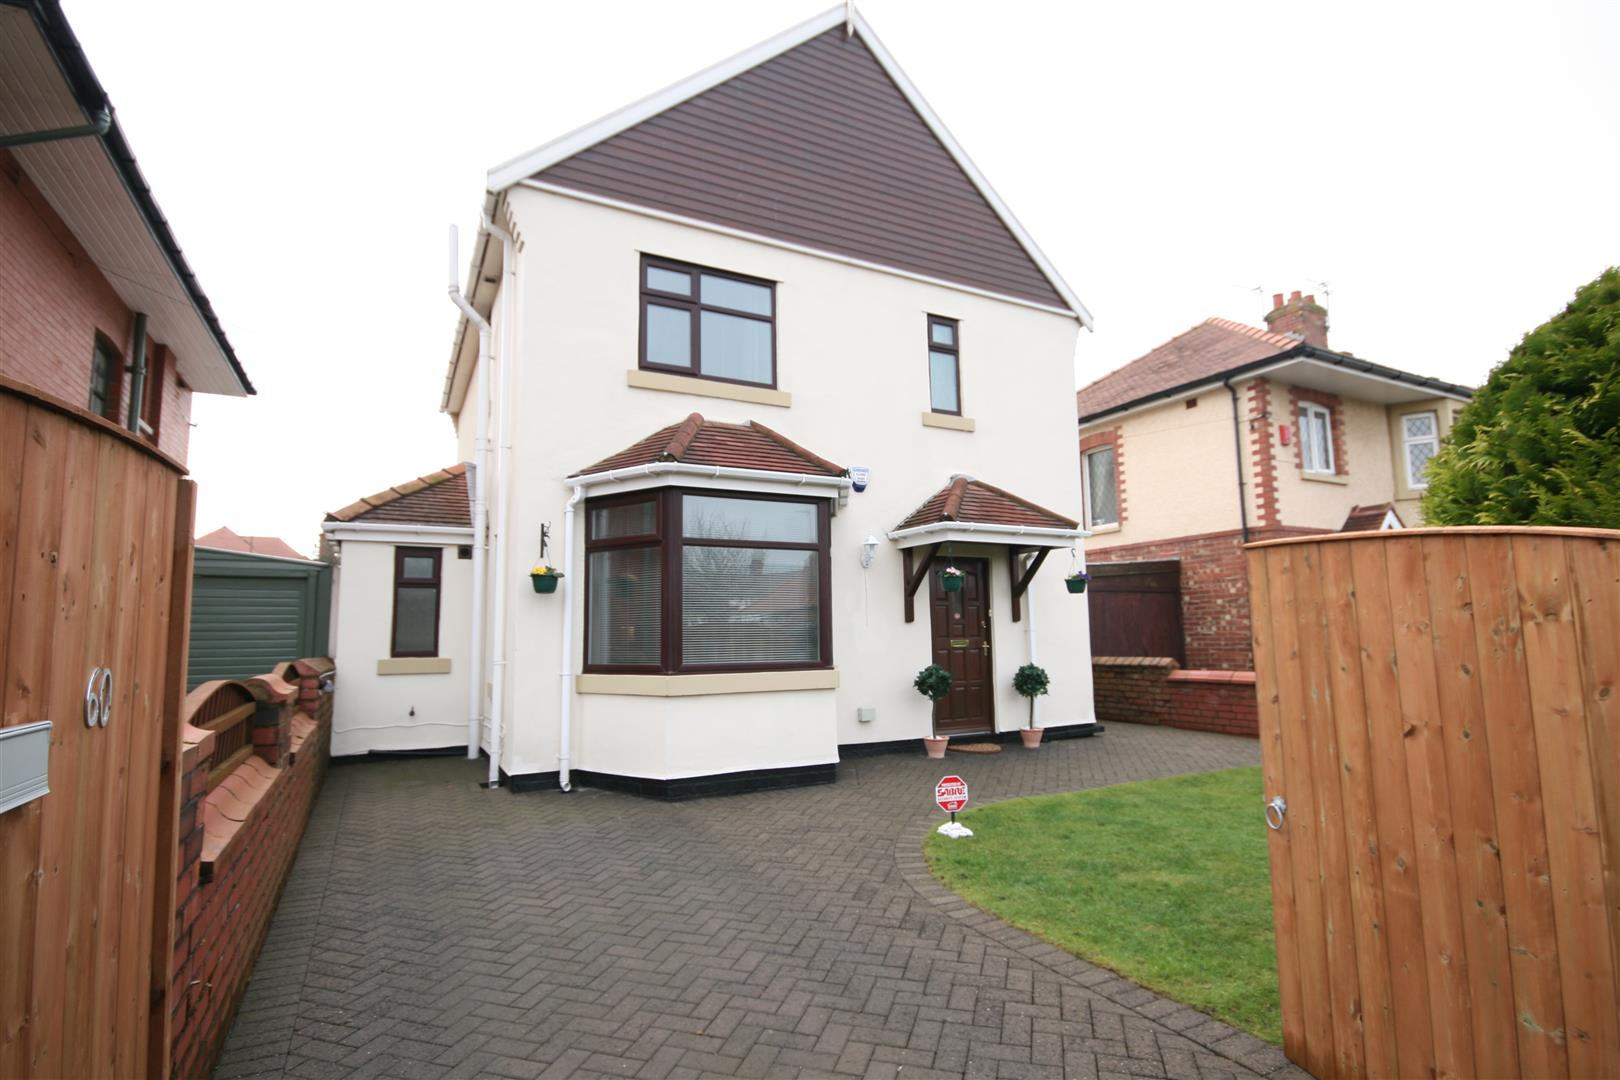 3 Bedrooms Detached House for sale in Kingsway, Fairhaven, Lytham St. Annes